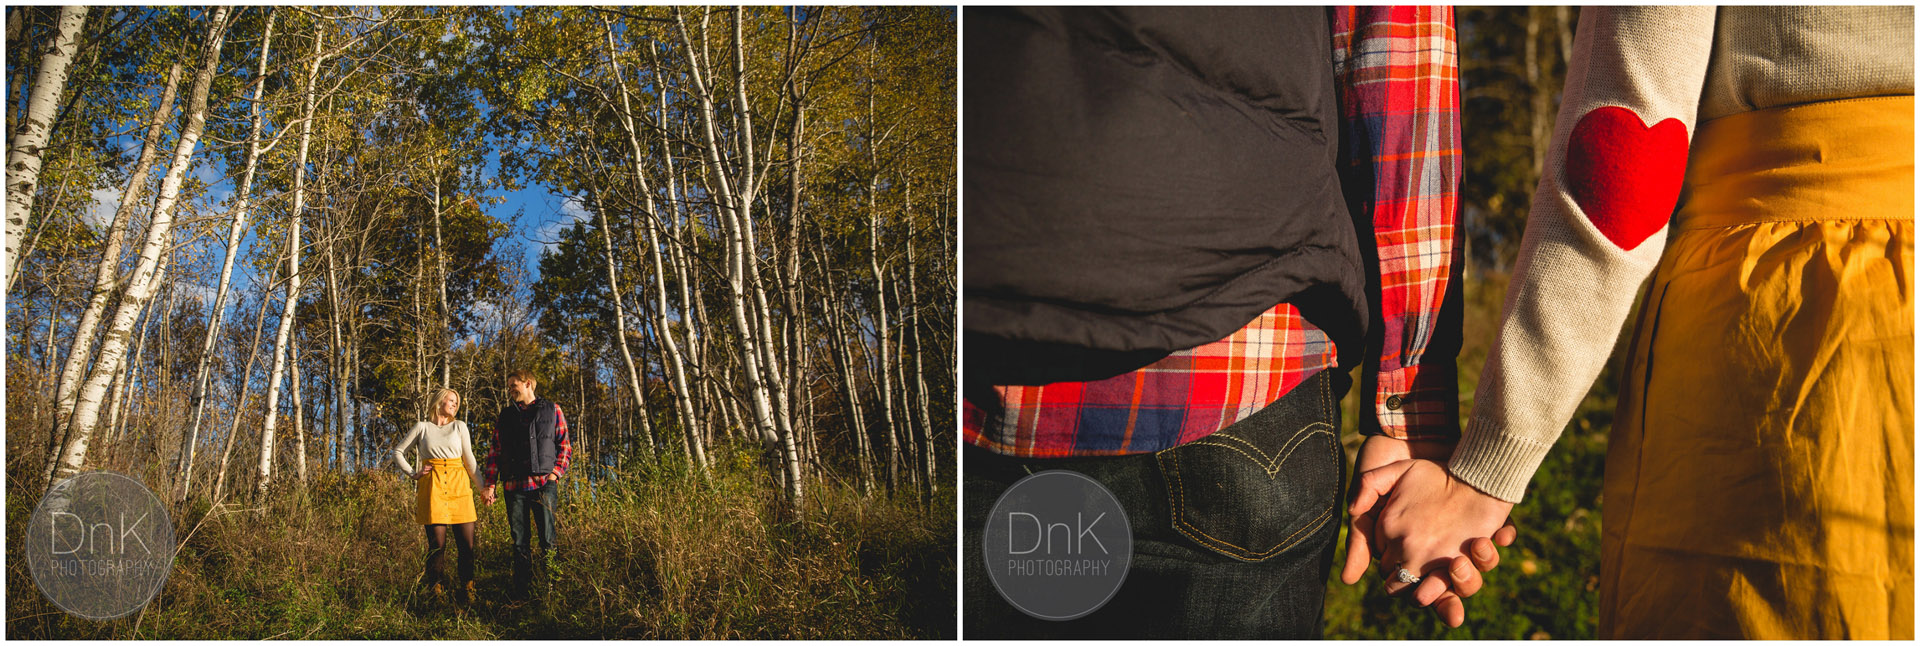 04-Fall-Engagement-Minnesota-DnK-Photography